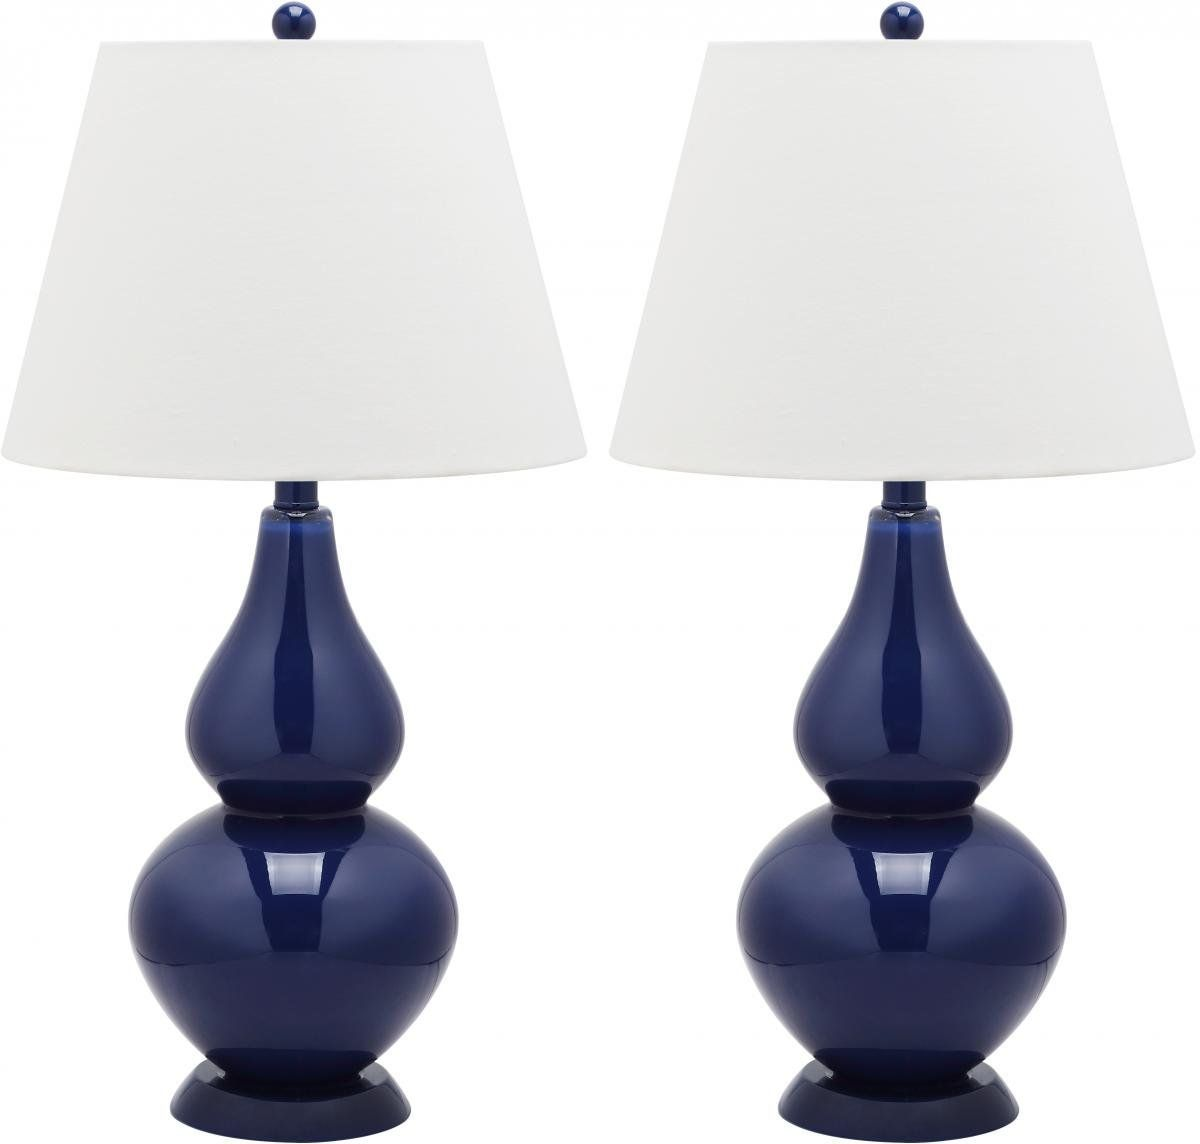 Safavieh Cybil Double Gourd Navy Table Lamps (Set Of   Overstock™ Shopping    Big Discounts On Safavieh Lamp Sets